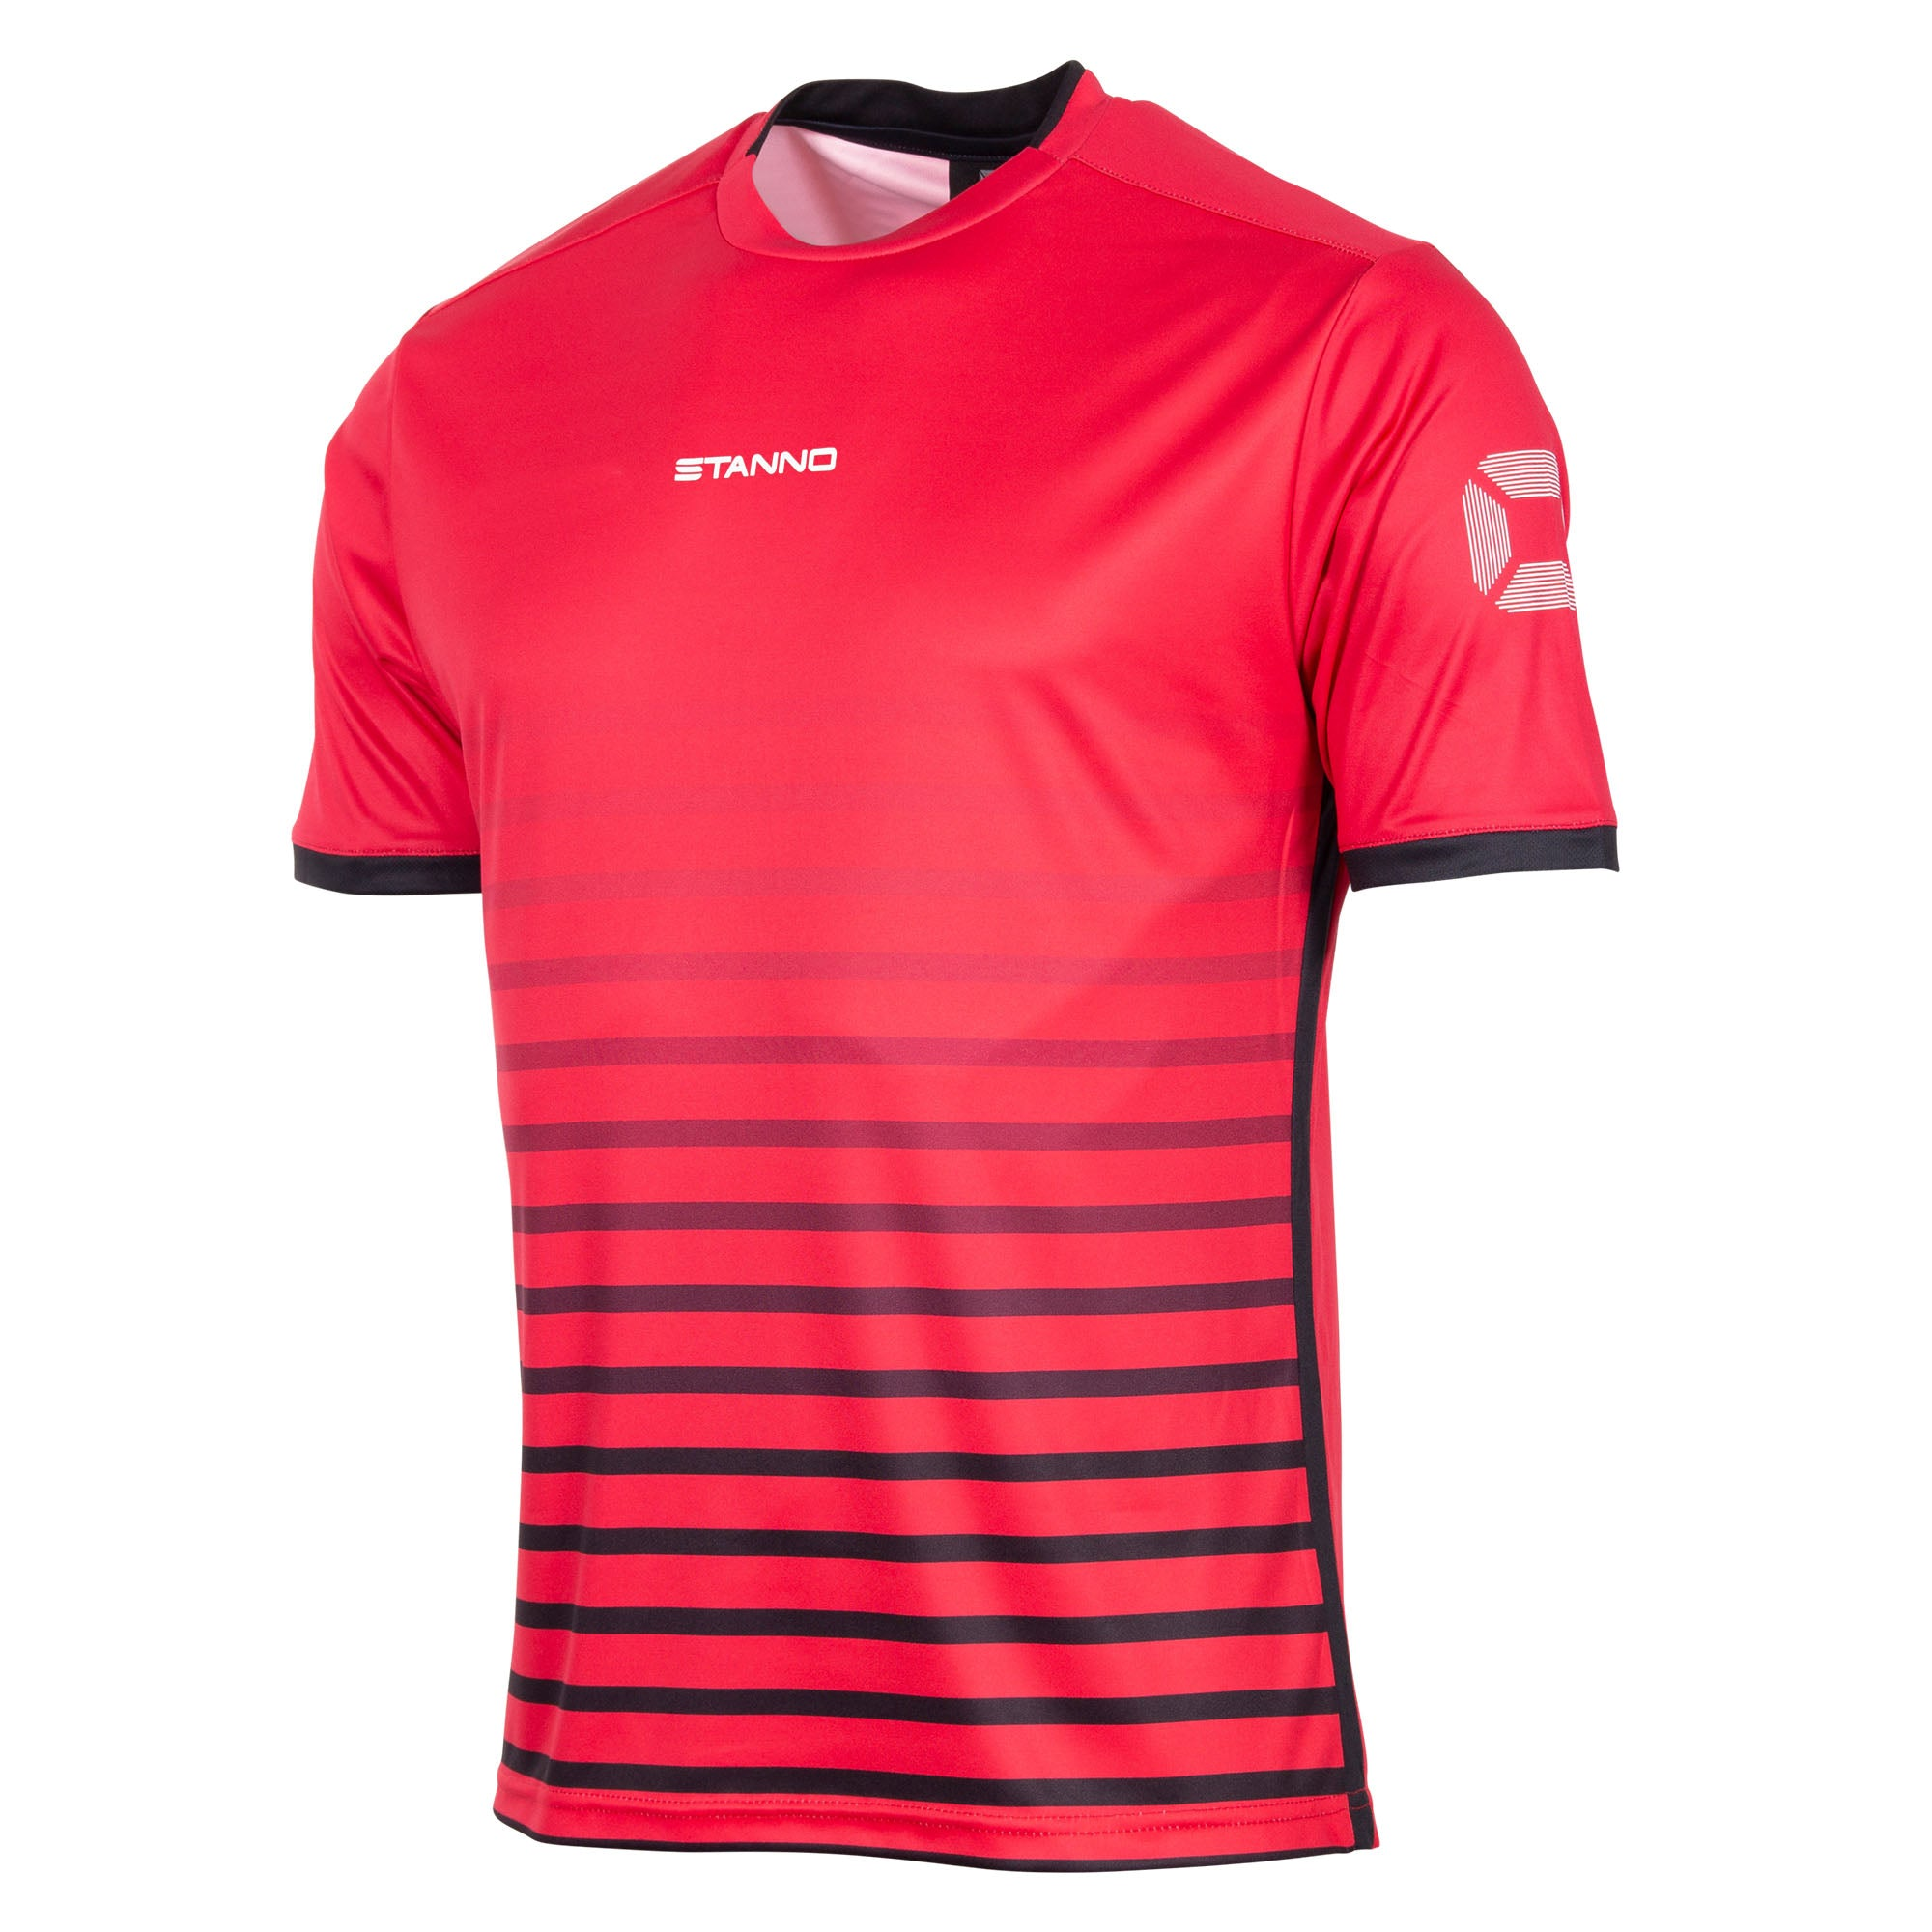 Stanno Fusion limited edition short sleeved shirt in red with black hooped graphic on the chest. Central Stanno text logo on the chest and Stadium logo on the sleeve. Contrast black panel on the sides and cuff.